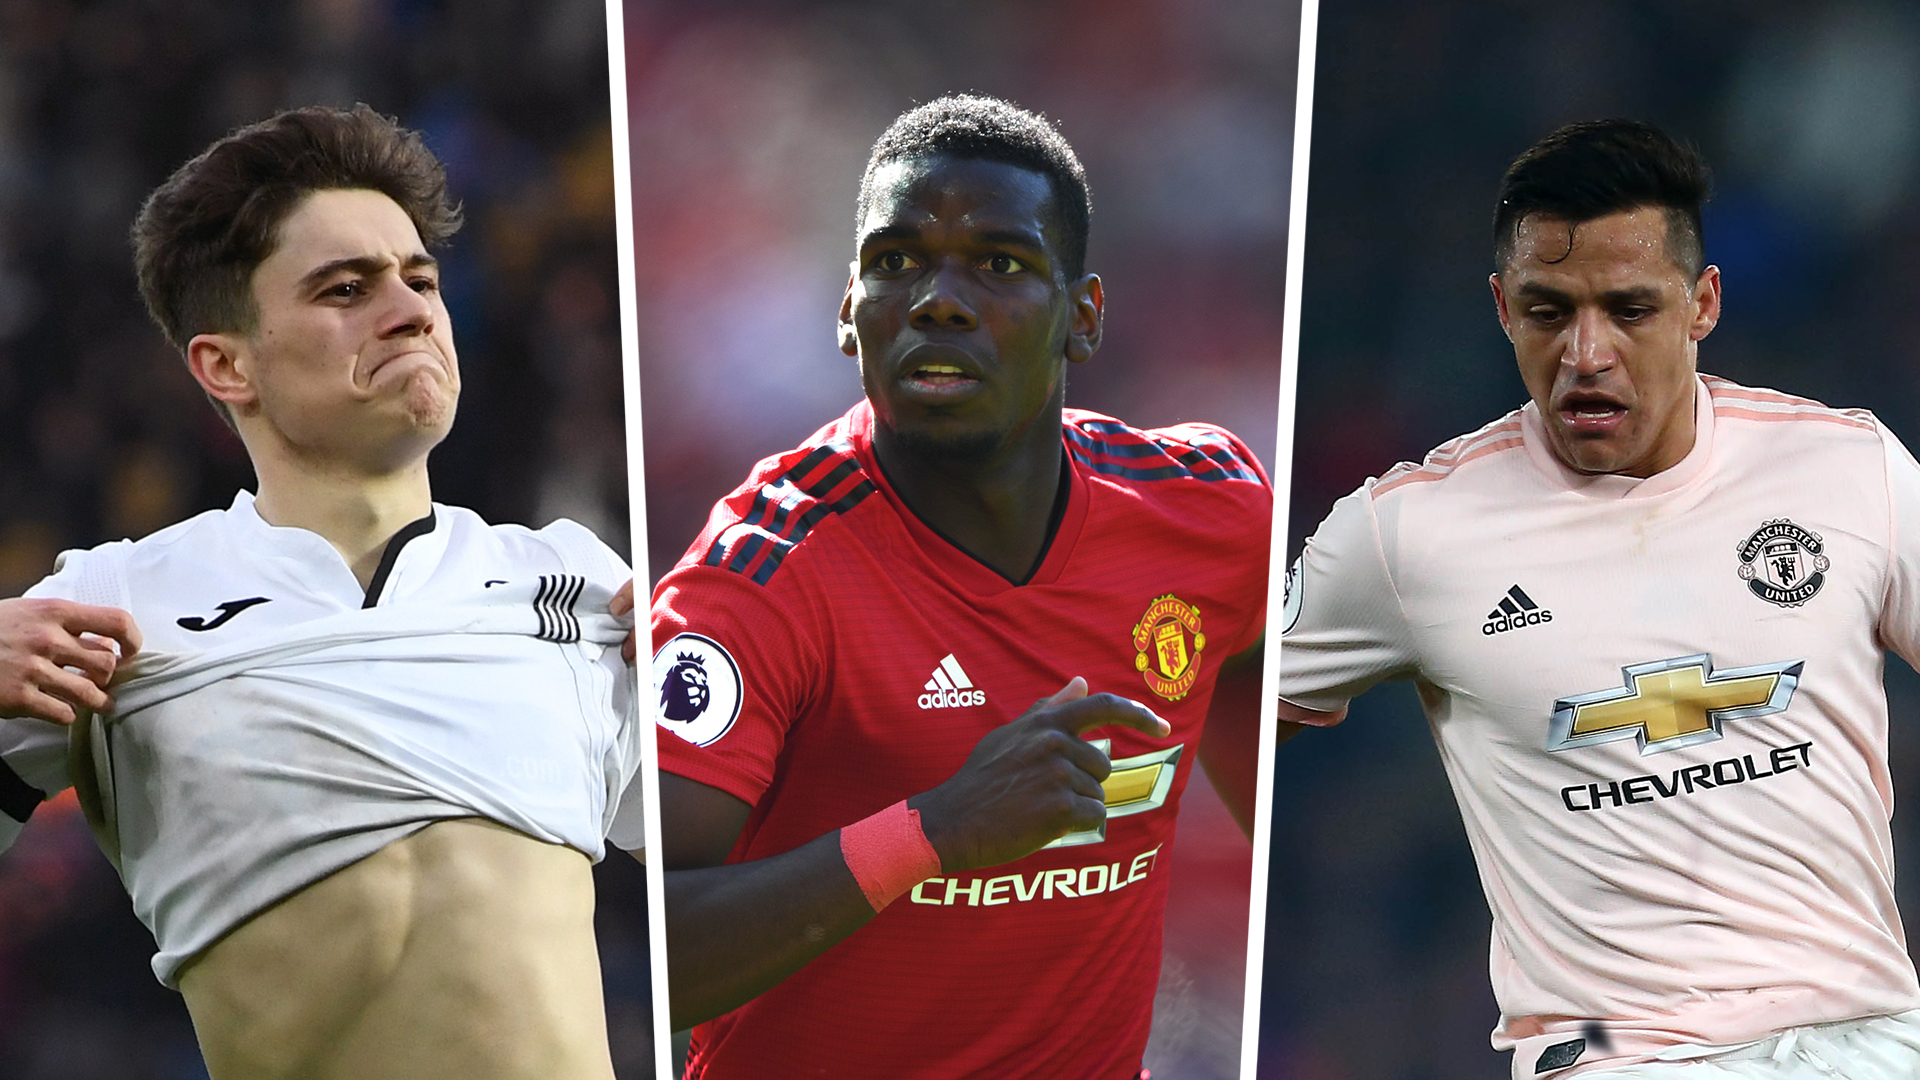 James in, Pogba Sanchez out - Manchester United's transfer plans this summer